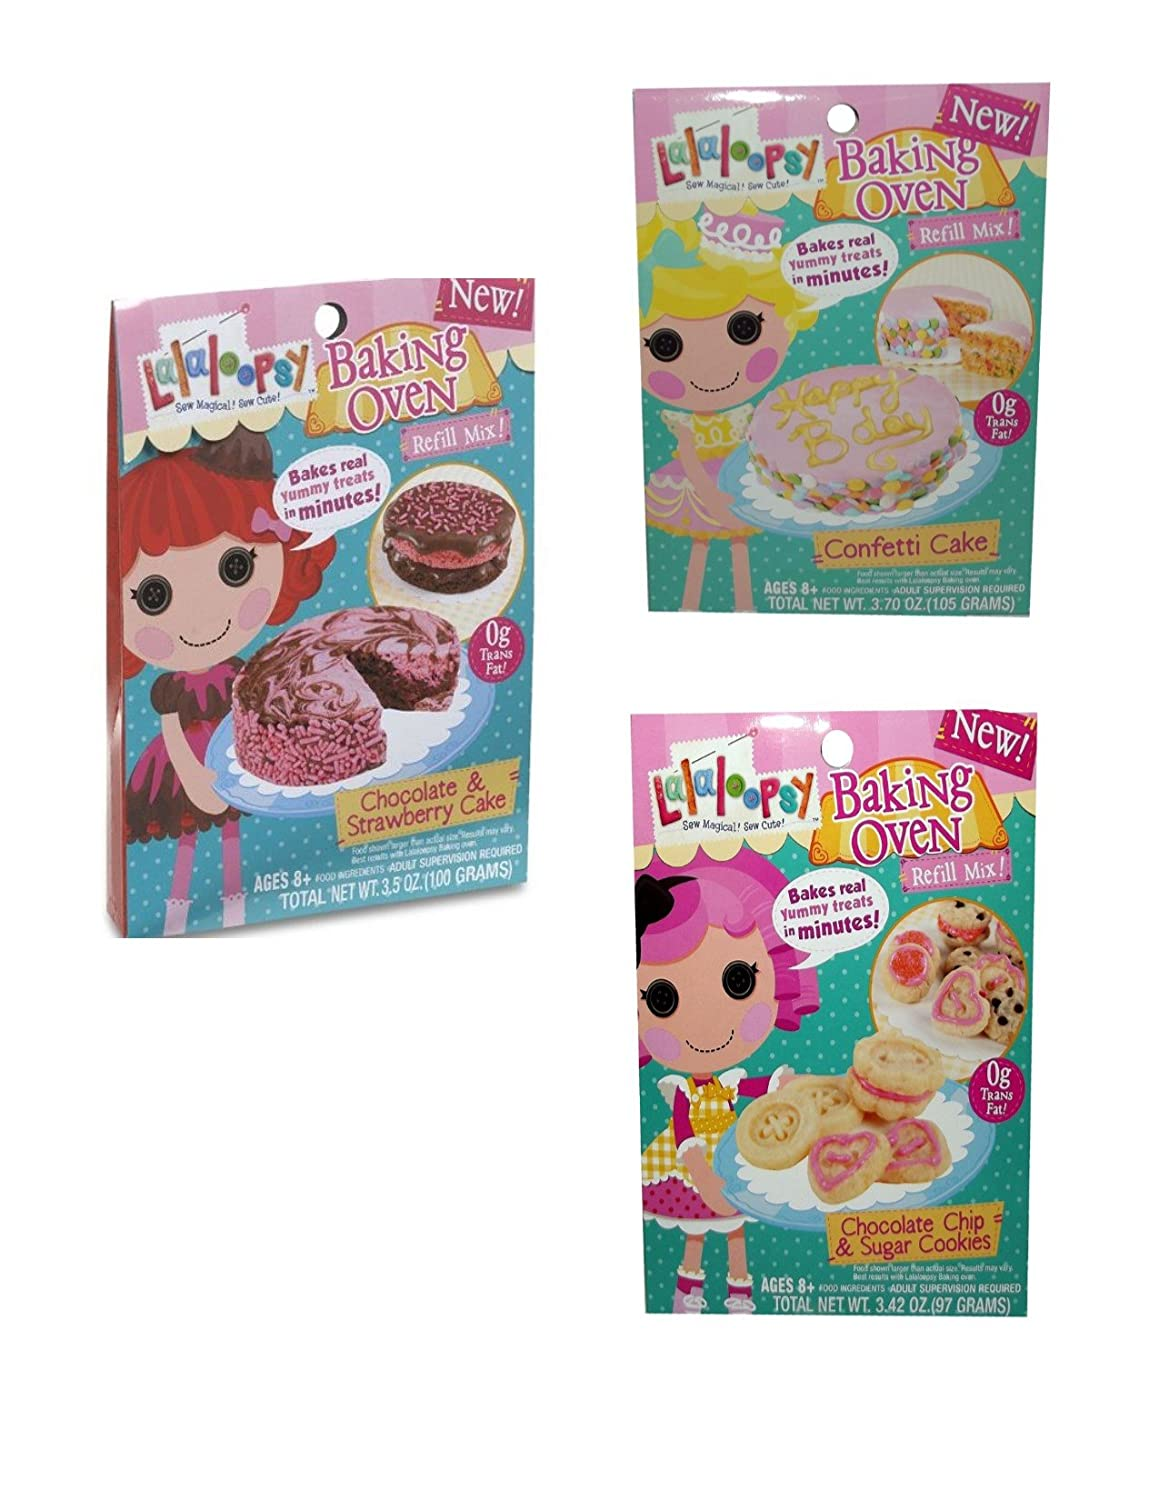 Lalaloopsy Baking Oven Refill Mix Chocolate Strawberry Cake, Chocolate Chip & Sugar Cookie & Confetti Cake Complete Set of 3